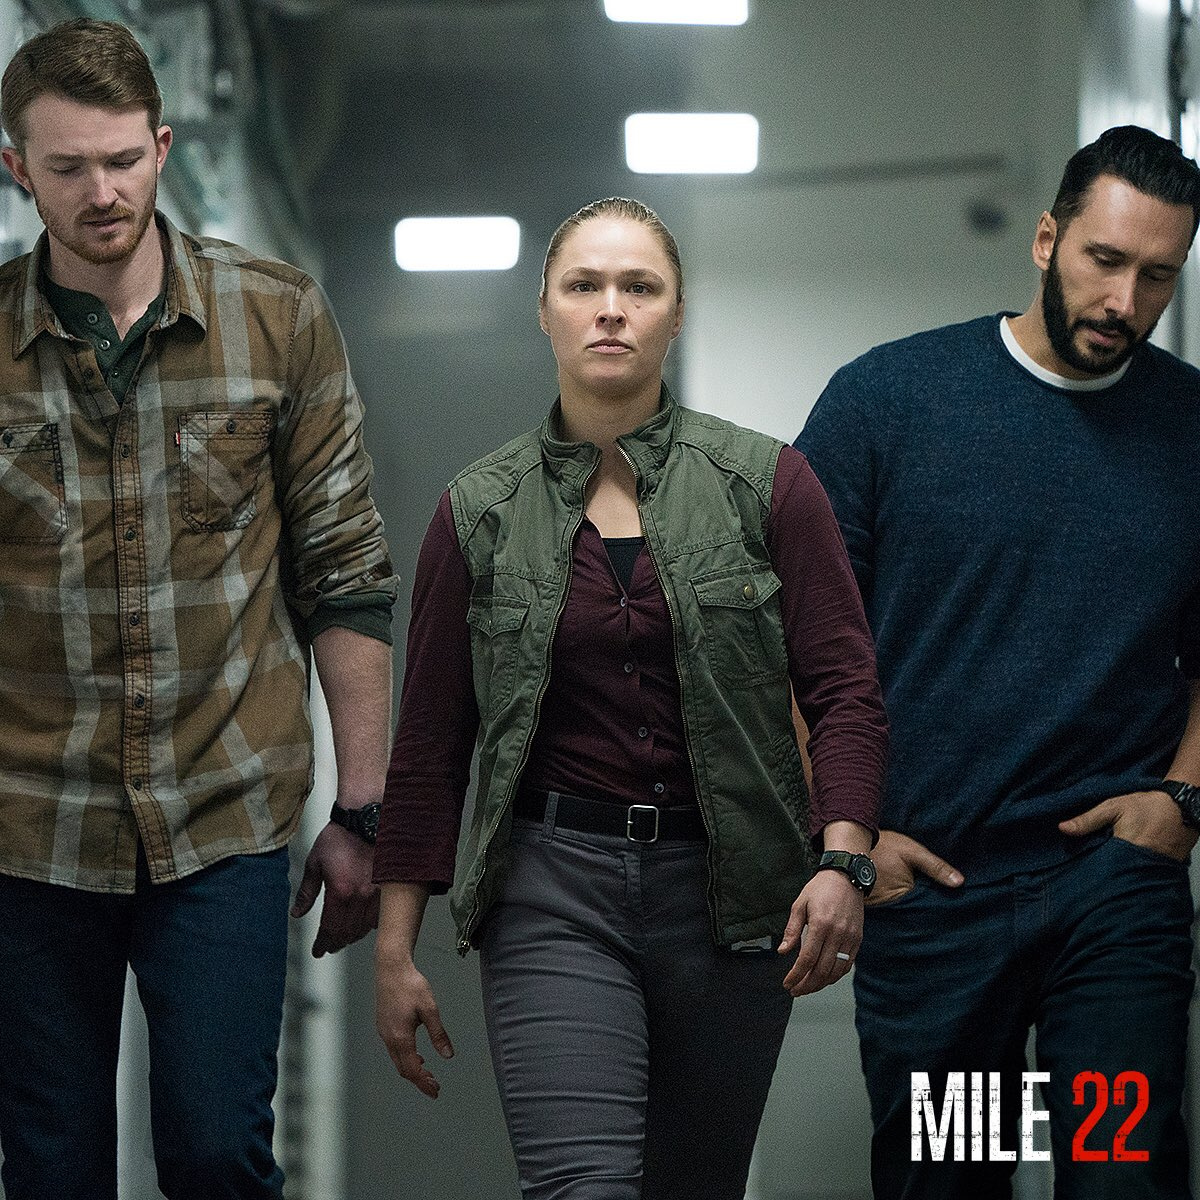 Stay out of her way. #Mile22 #August17th https://t.co/rcwSRIg1s0